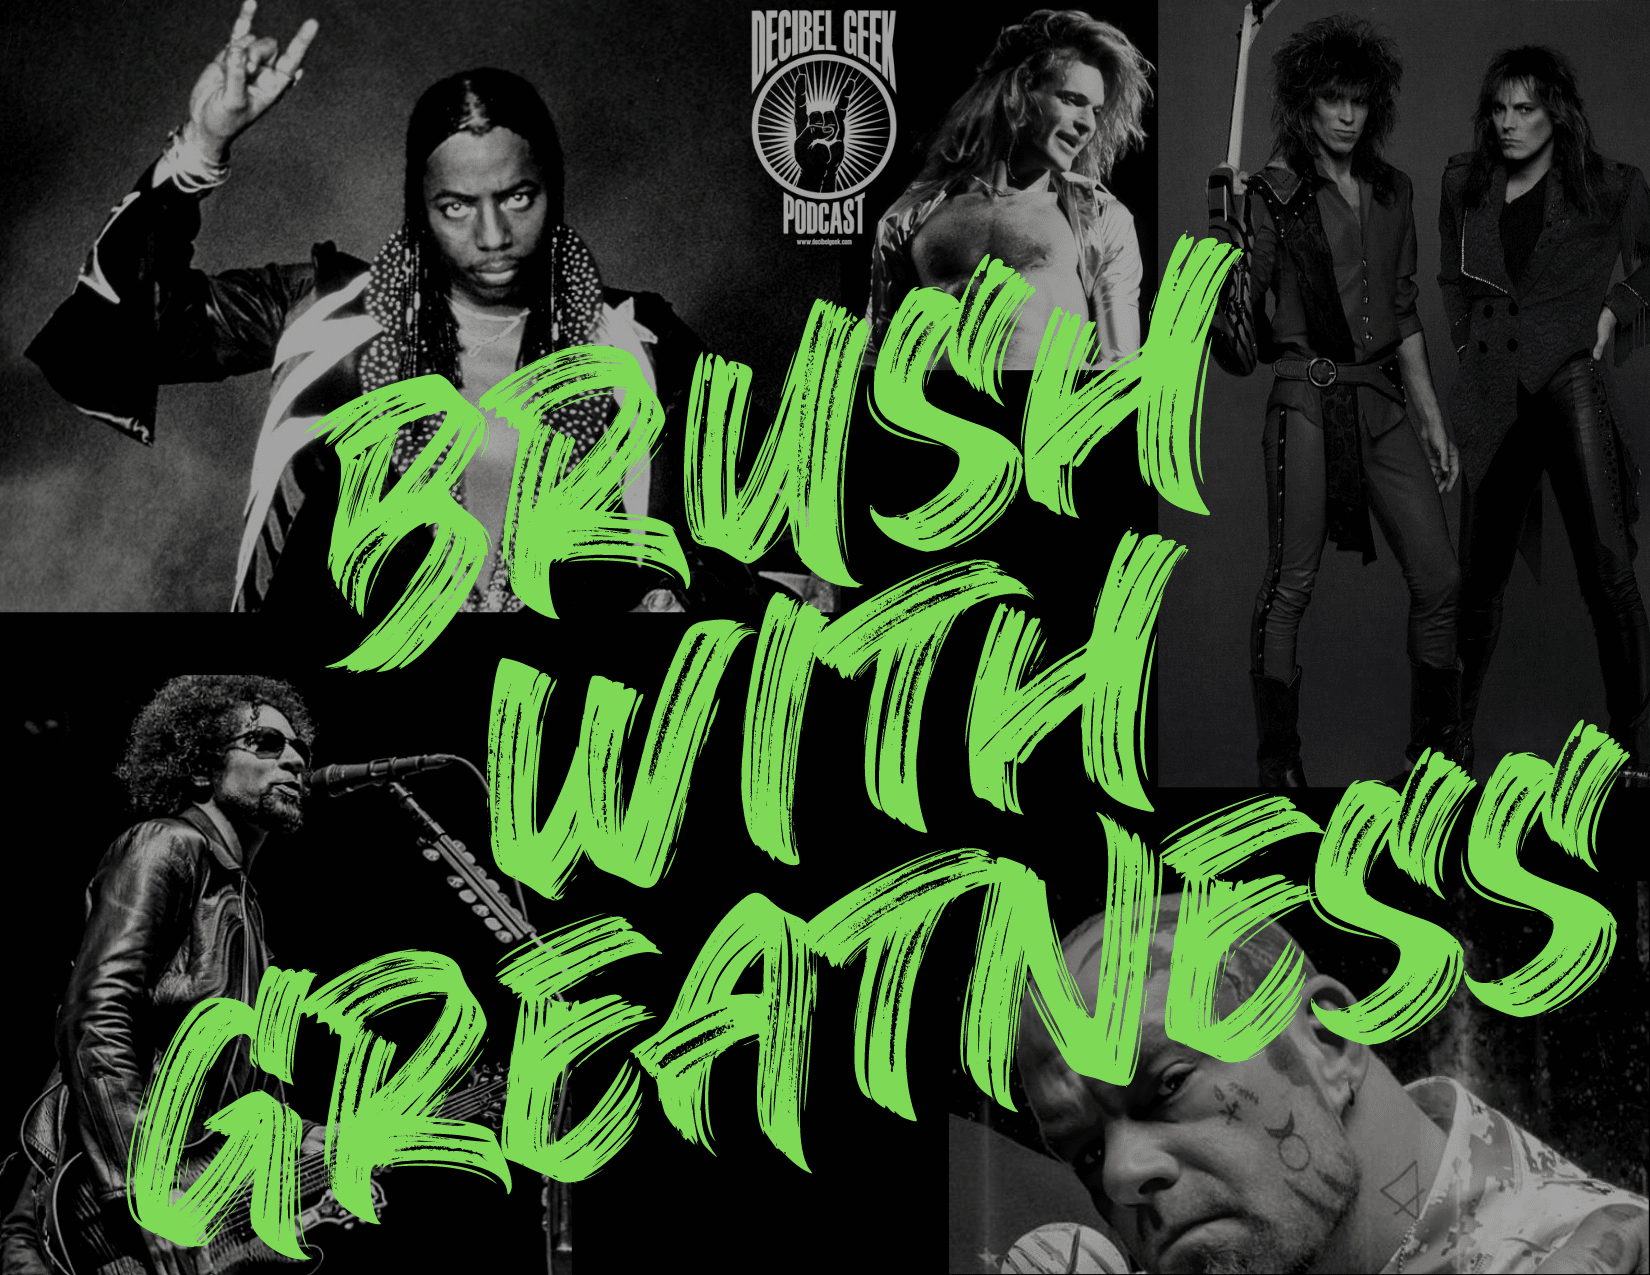 Brush with Greatness, Decibel Geek, Dokken, Rick James, David Lee Roth, Five Finger Death Punch, rock, metal